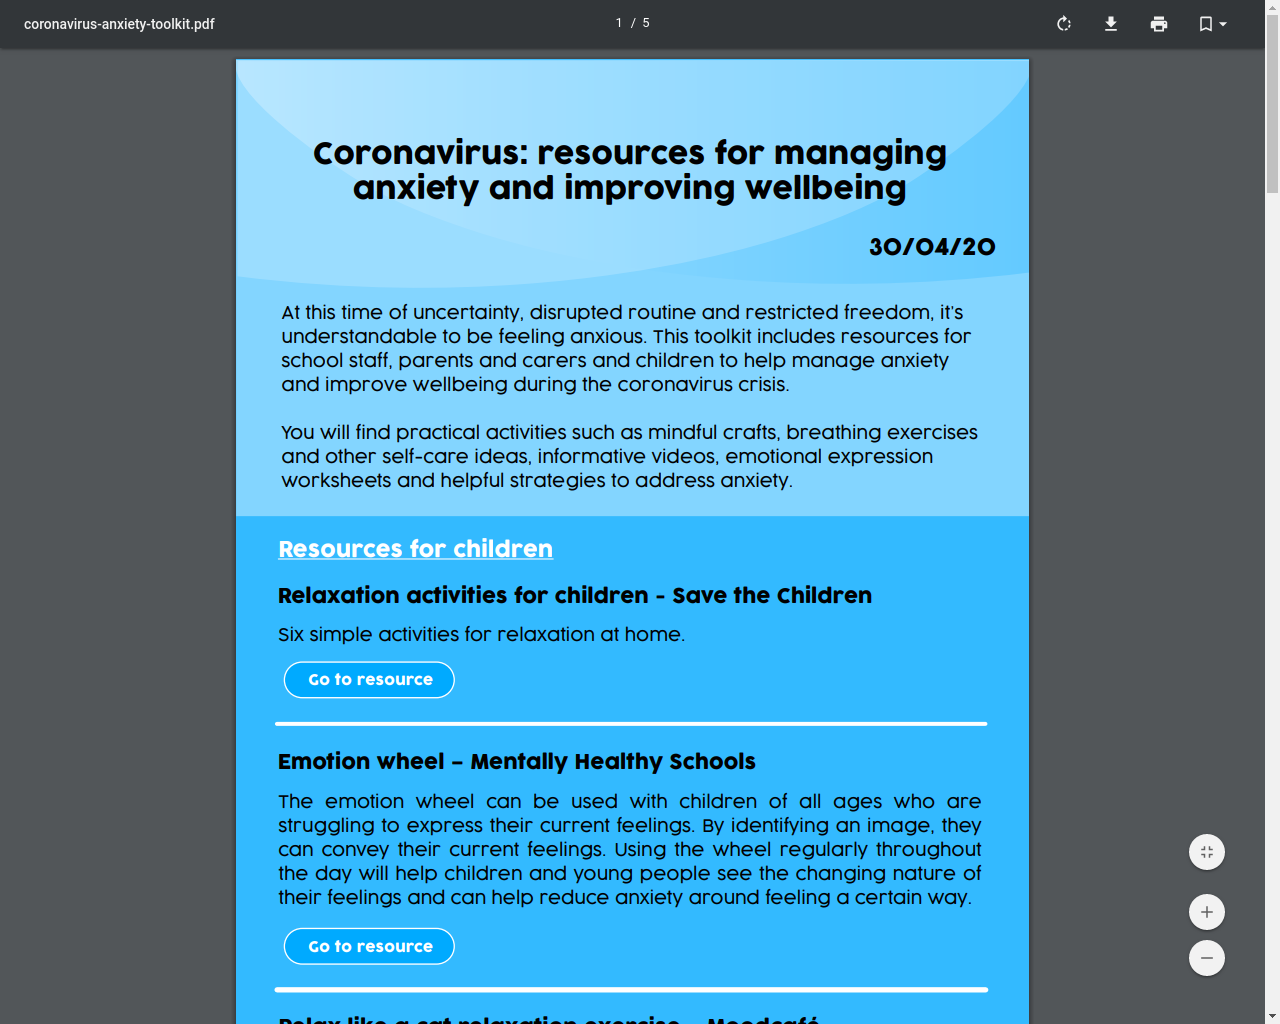 Resources for managing anxiety and improving wellbeing